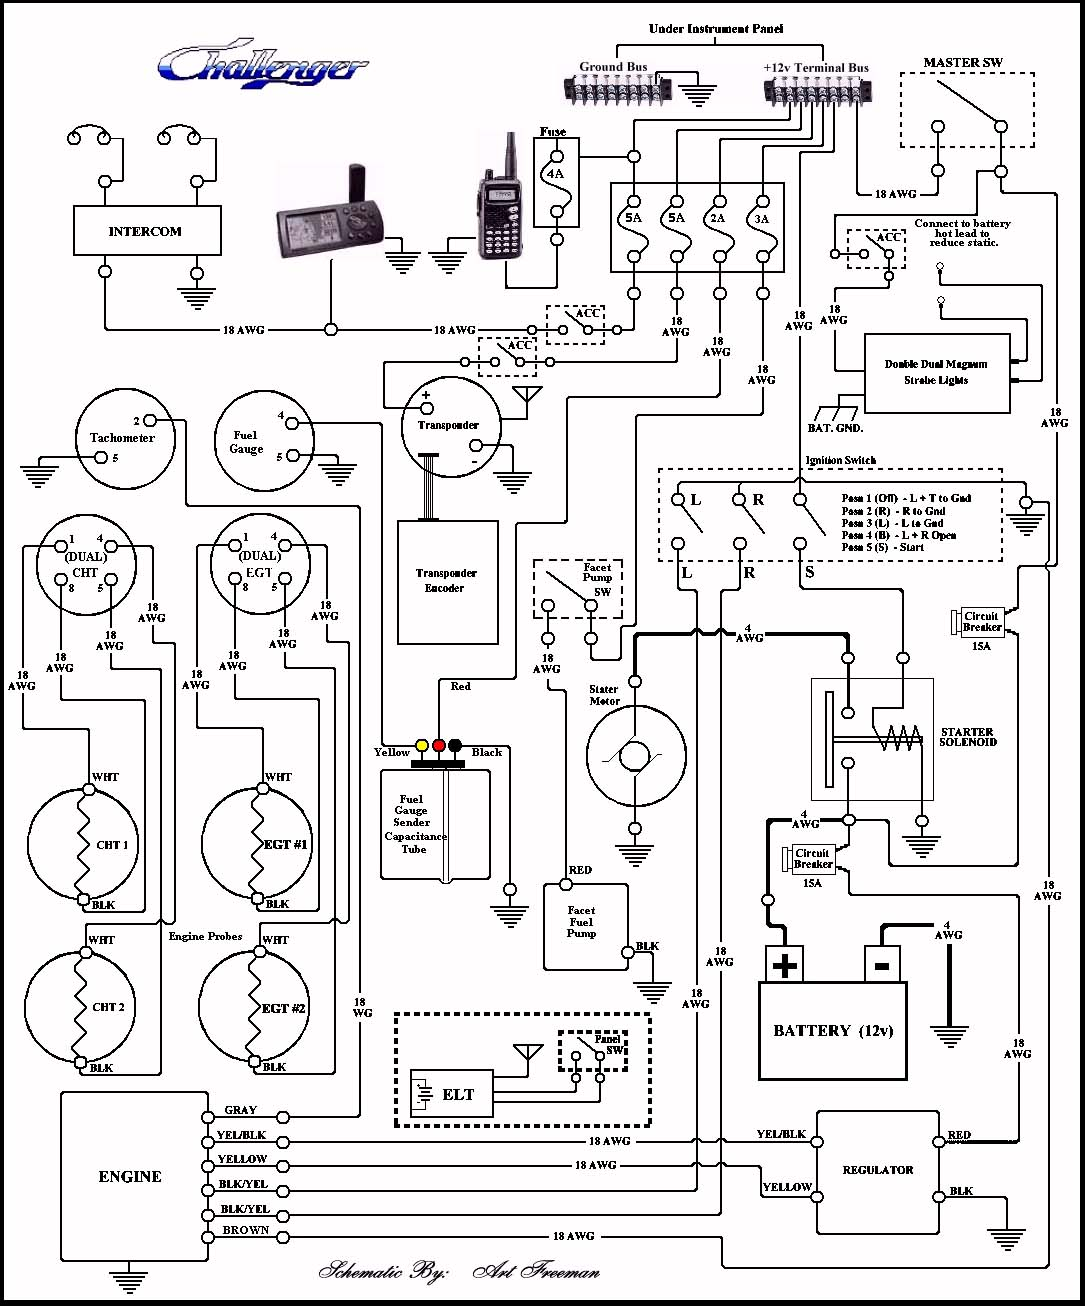 Schem_Analog basic panel wiring diagram wiring diagram simonand rv distribution panel wiring diagram at bakdesigns.co